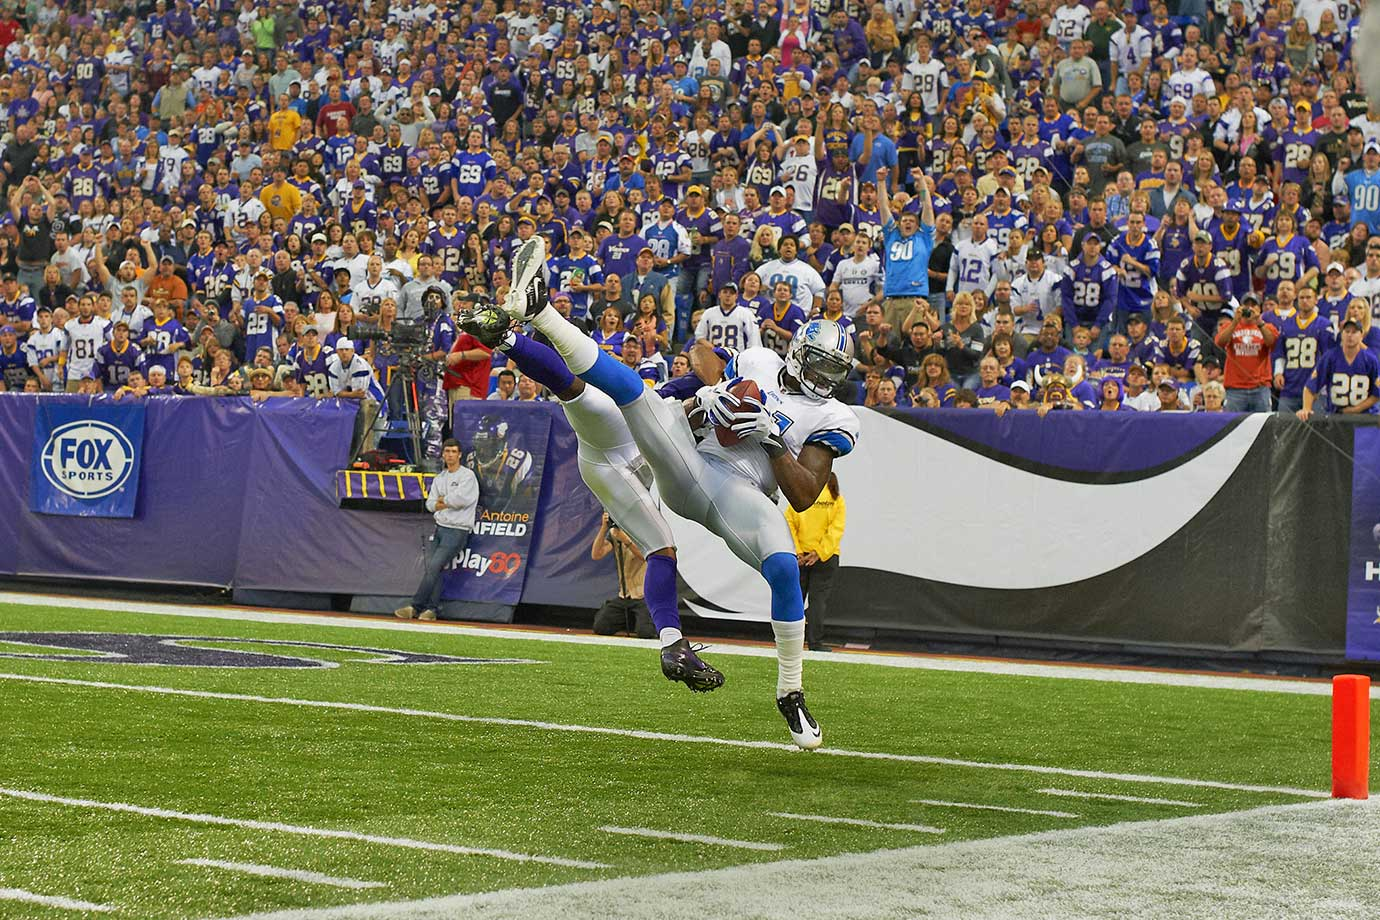 Sept. 25, 2011 — Detroit Lions vs. Minnesota Vikings